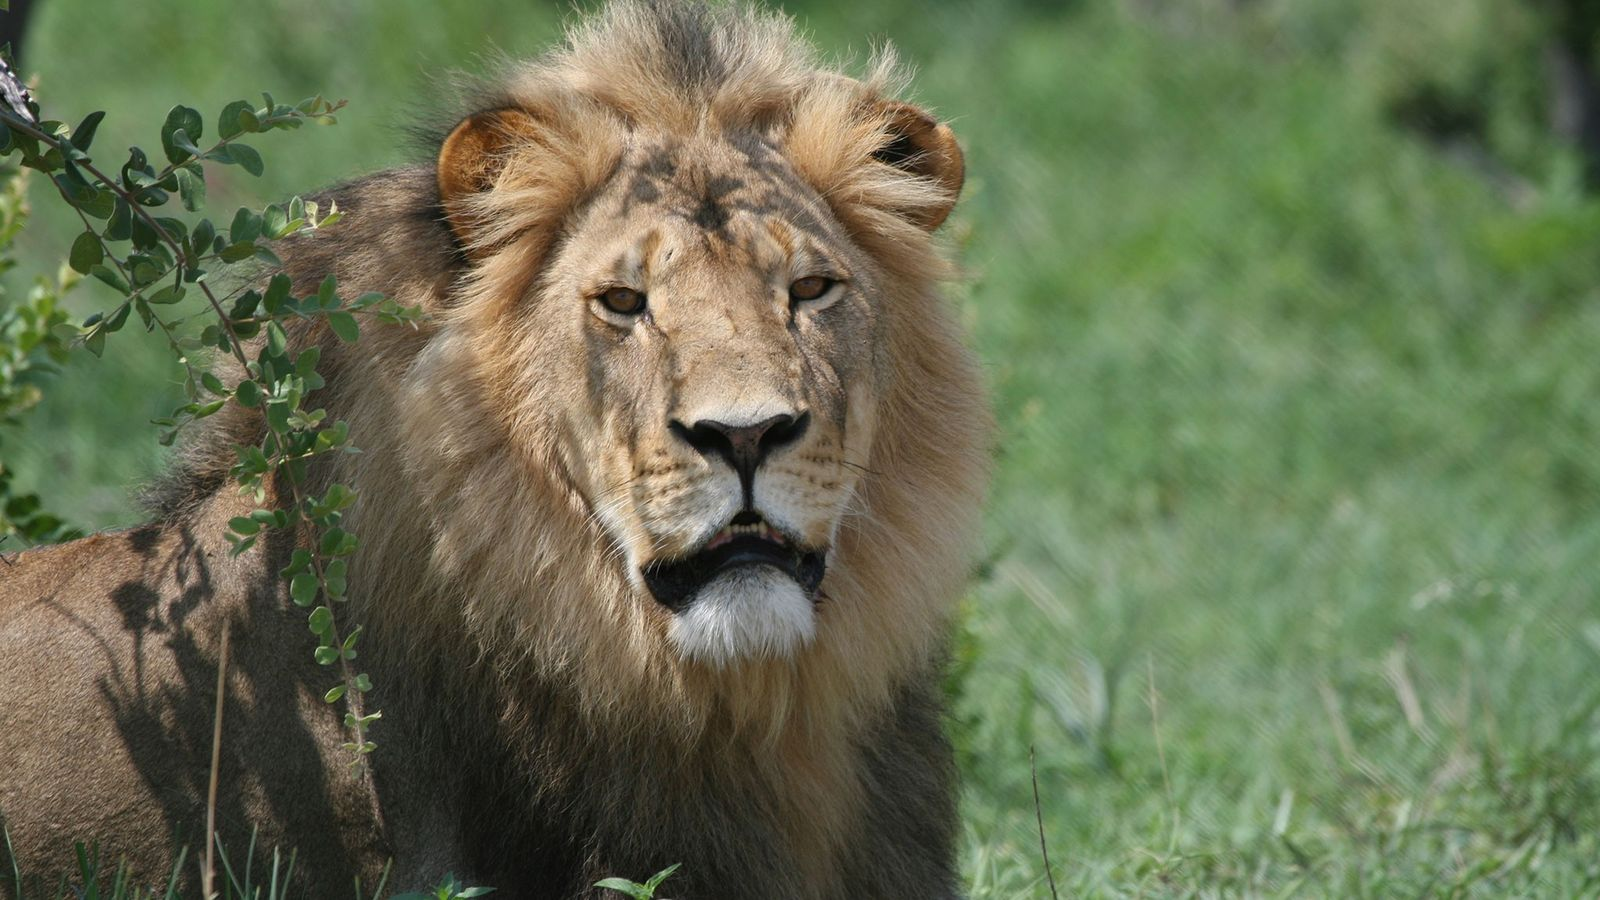 Wildlife biologist Andrew Loveridge studied Cecil for seven years after attaching a tracking collar to the ...